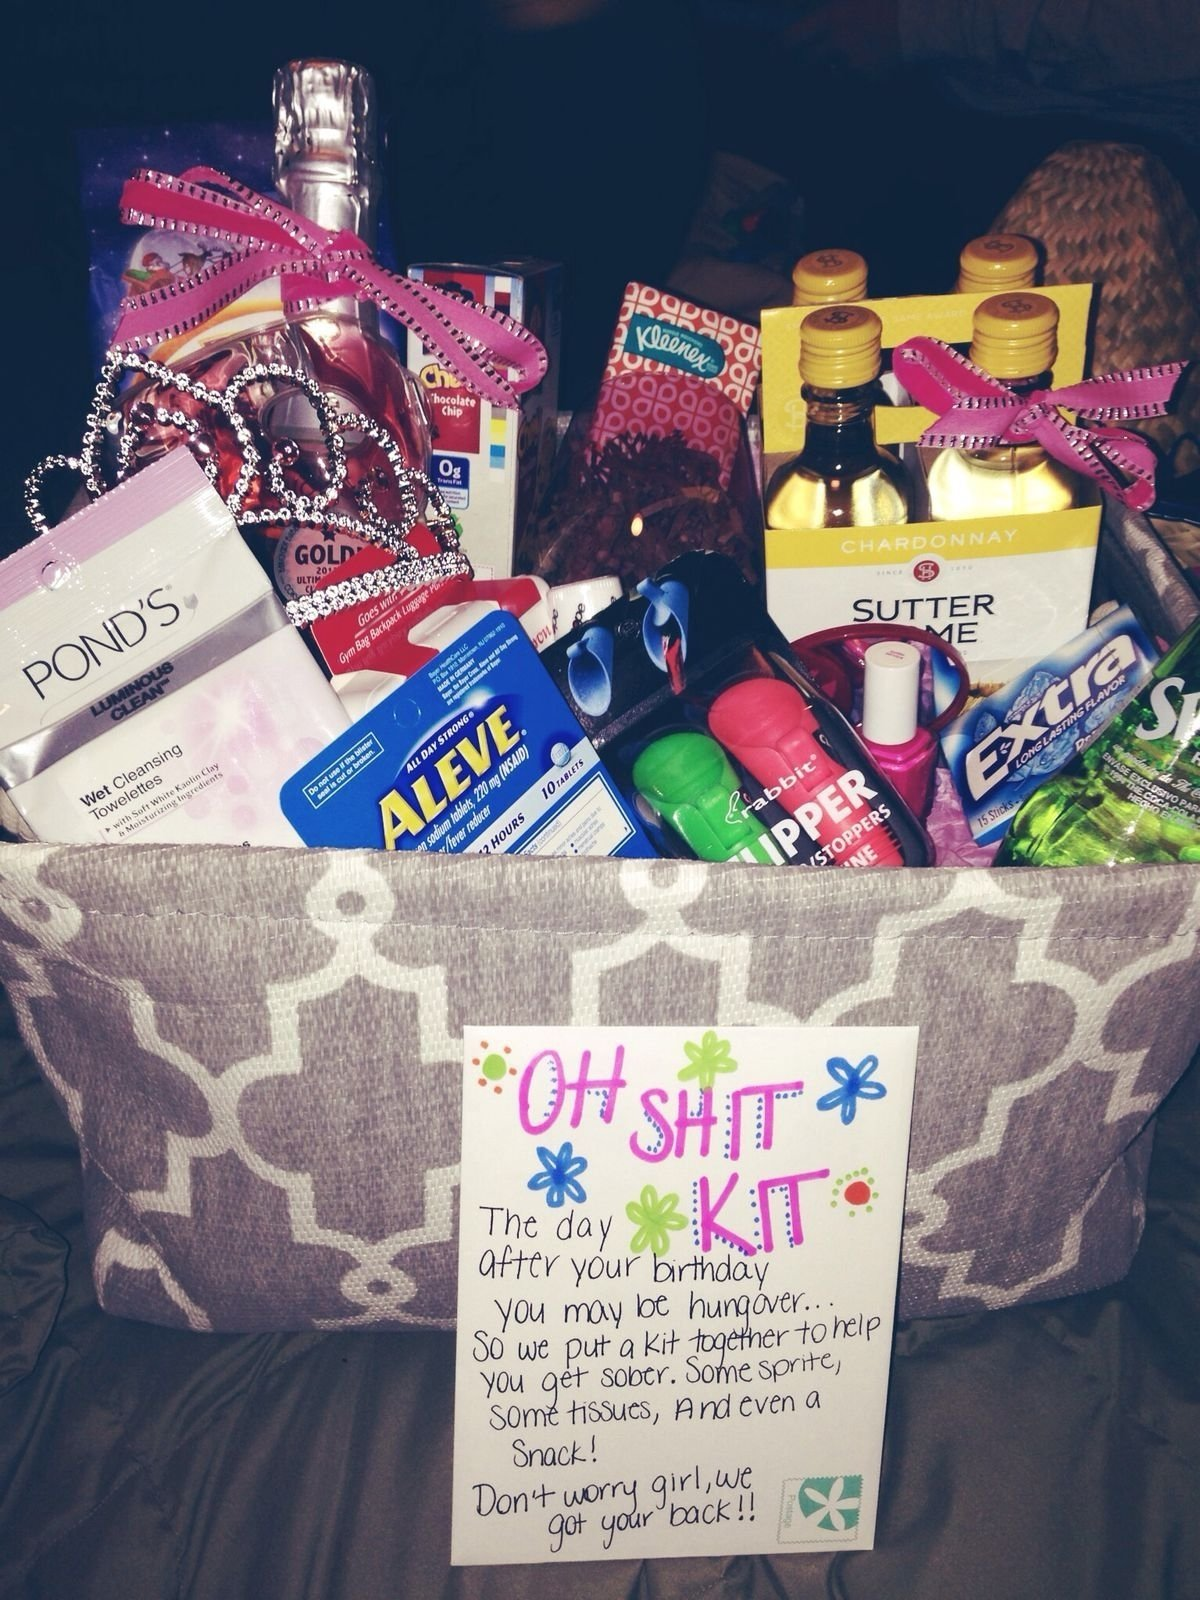 10 Lovable Cute Birthday Gift Ideas For Girlfriend oh shit kit cute idea only 2 more years till k can legally drink 7 2021